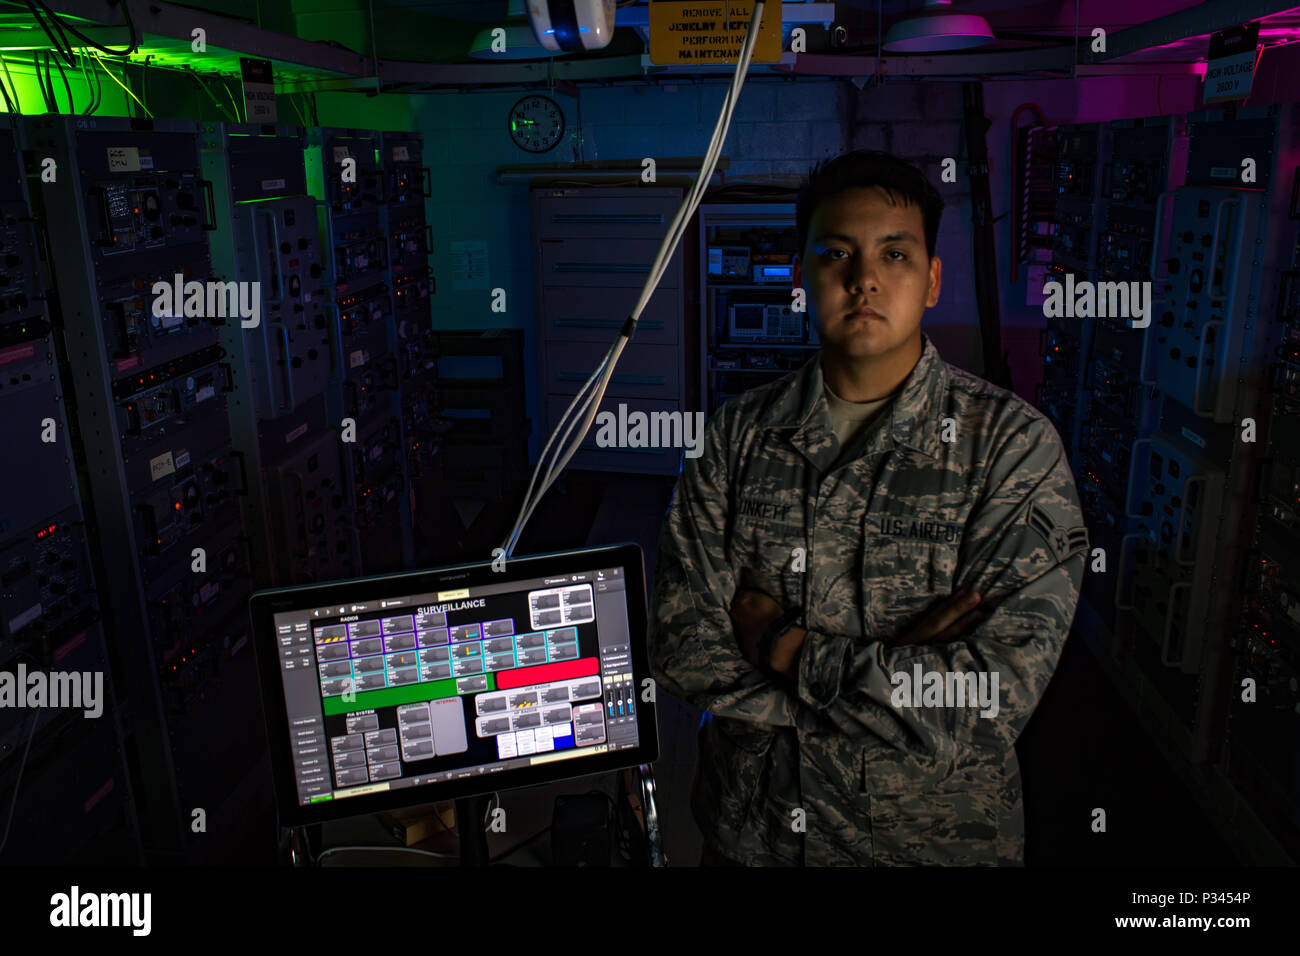 Airman 1st Class Kevin Plunkett, a radio frequency transmissions systems technician with the Hawaii Air National Guard's 169th Air Defense Squadron, stands in the radar equipment room located on Mt. Ka'ala Air Force station (AFS), Aug. 12, 2016, Oahu, Hawaii. Mt. Ka'ala AFS sits atop the highest point on the island of Oahu and houses the 169th ADS's radar equipment, which is used to monitor the airspace around the Hawaiian Islands. (U.S. Air Force photo by Tech. Sgt. Brandon Shapiro) Stock Photo